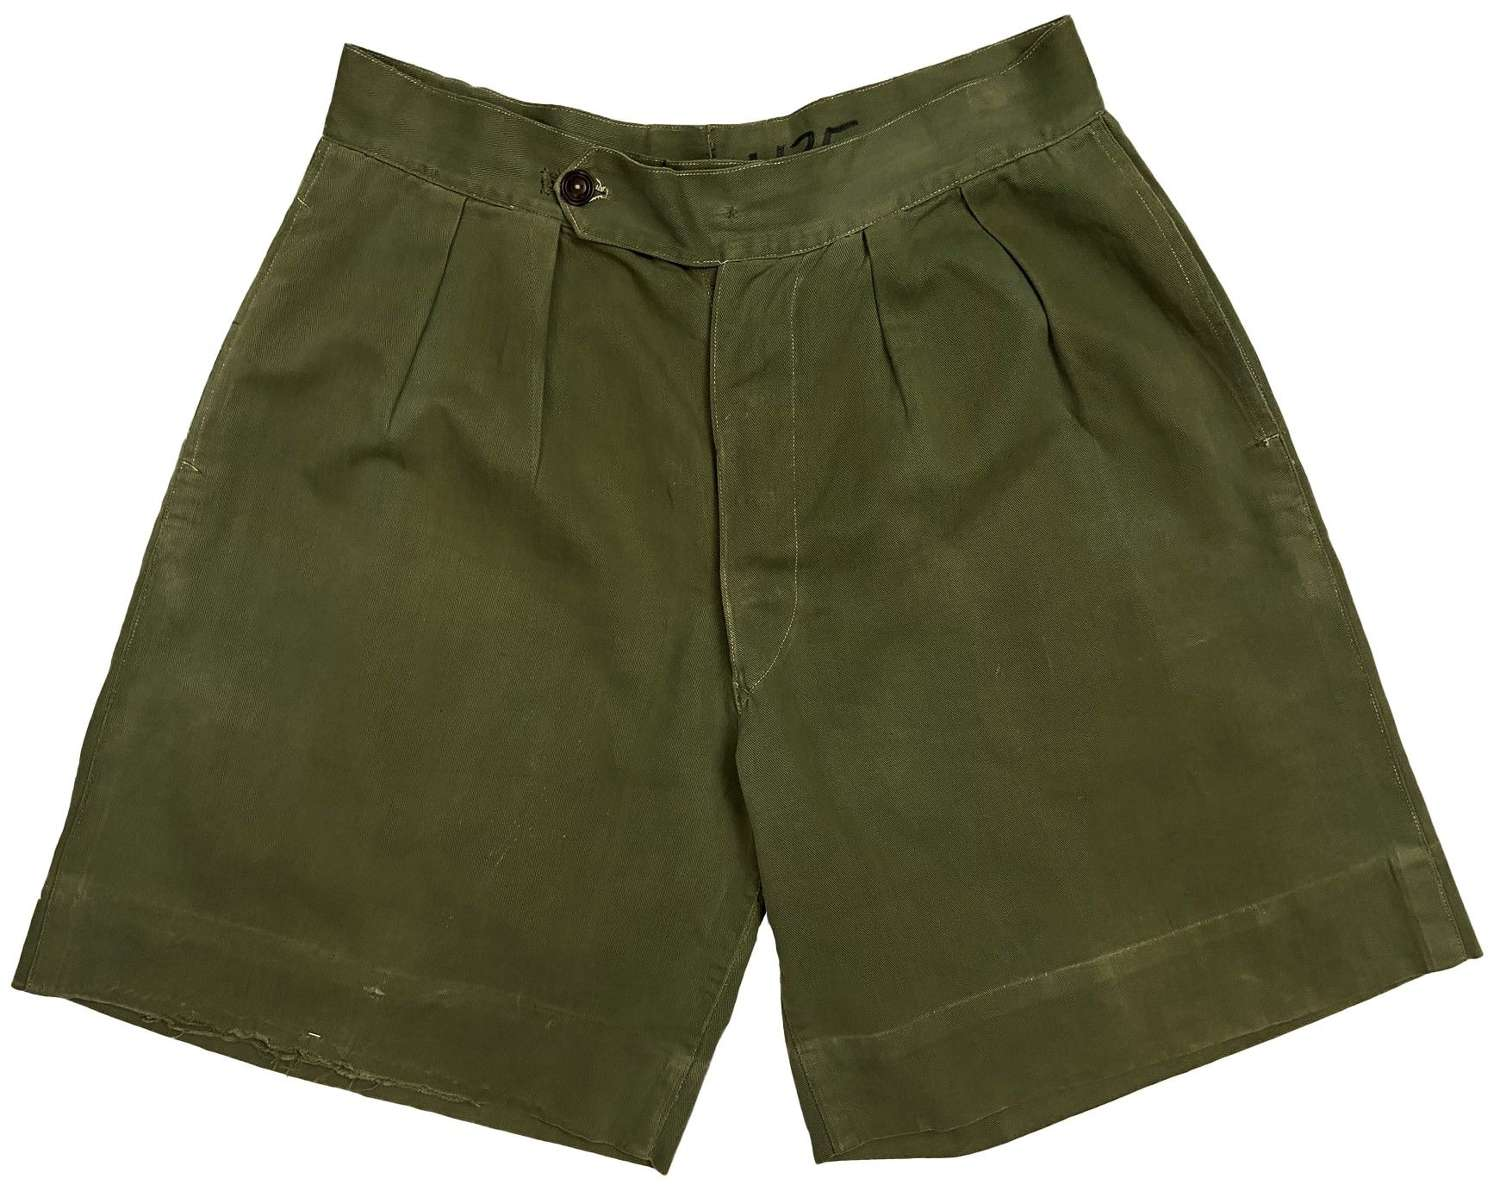 Original 1940s Theatre Made British Jungle Green Shorts